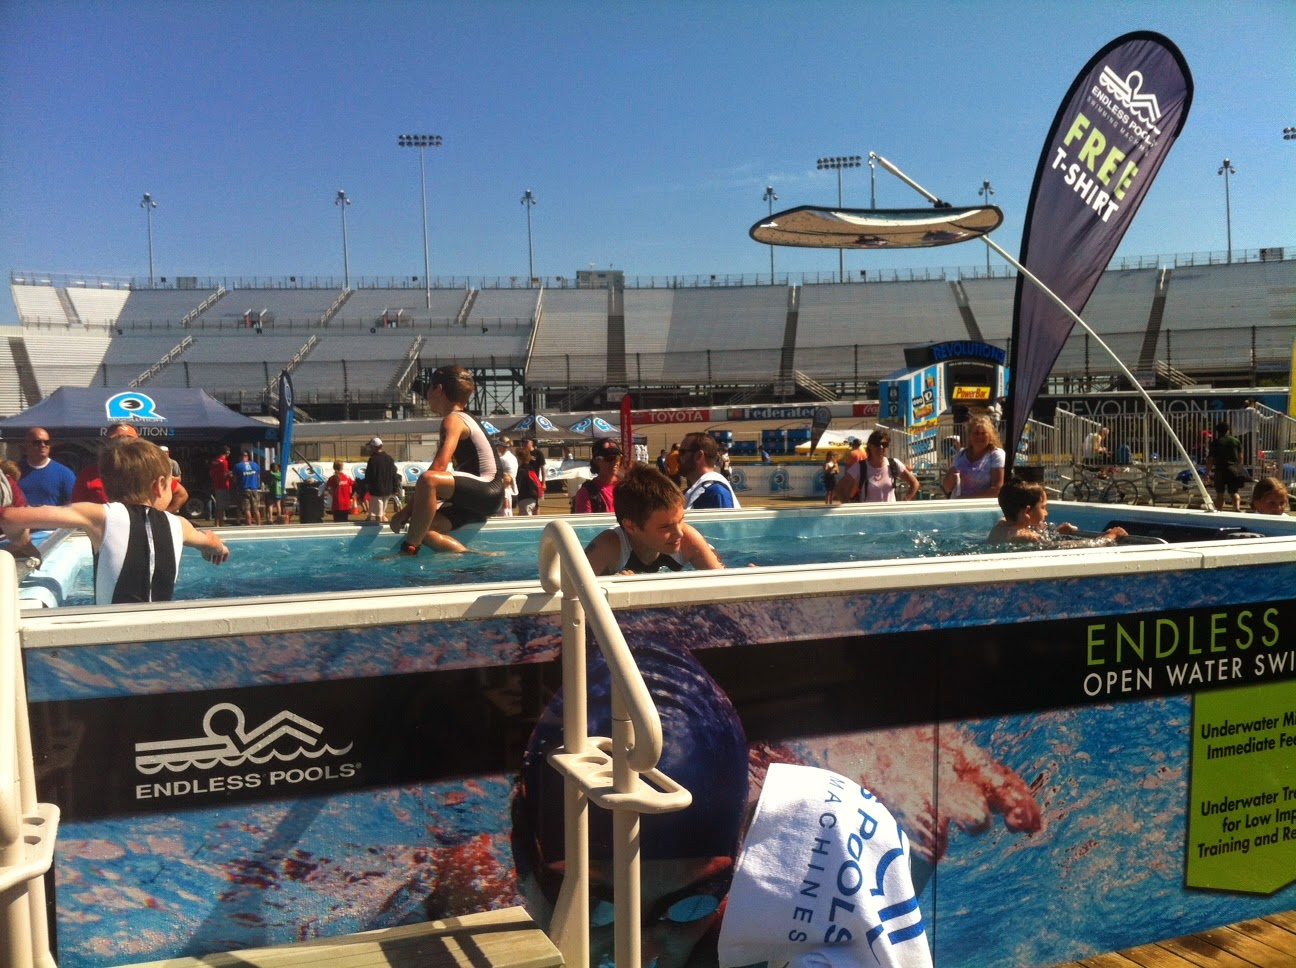 The Performance Endless Pool at the REV3 Triathlon in Richmond, Virginia